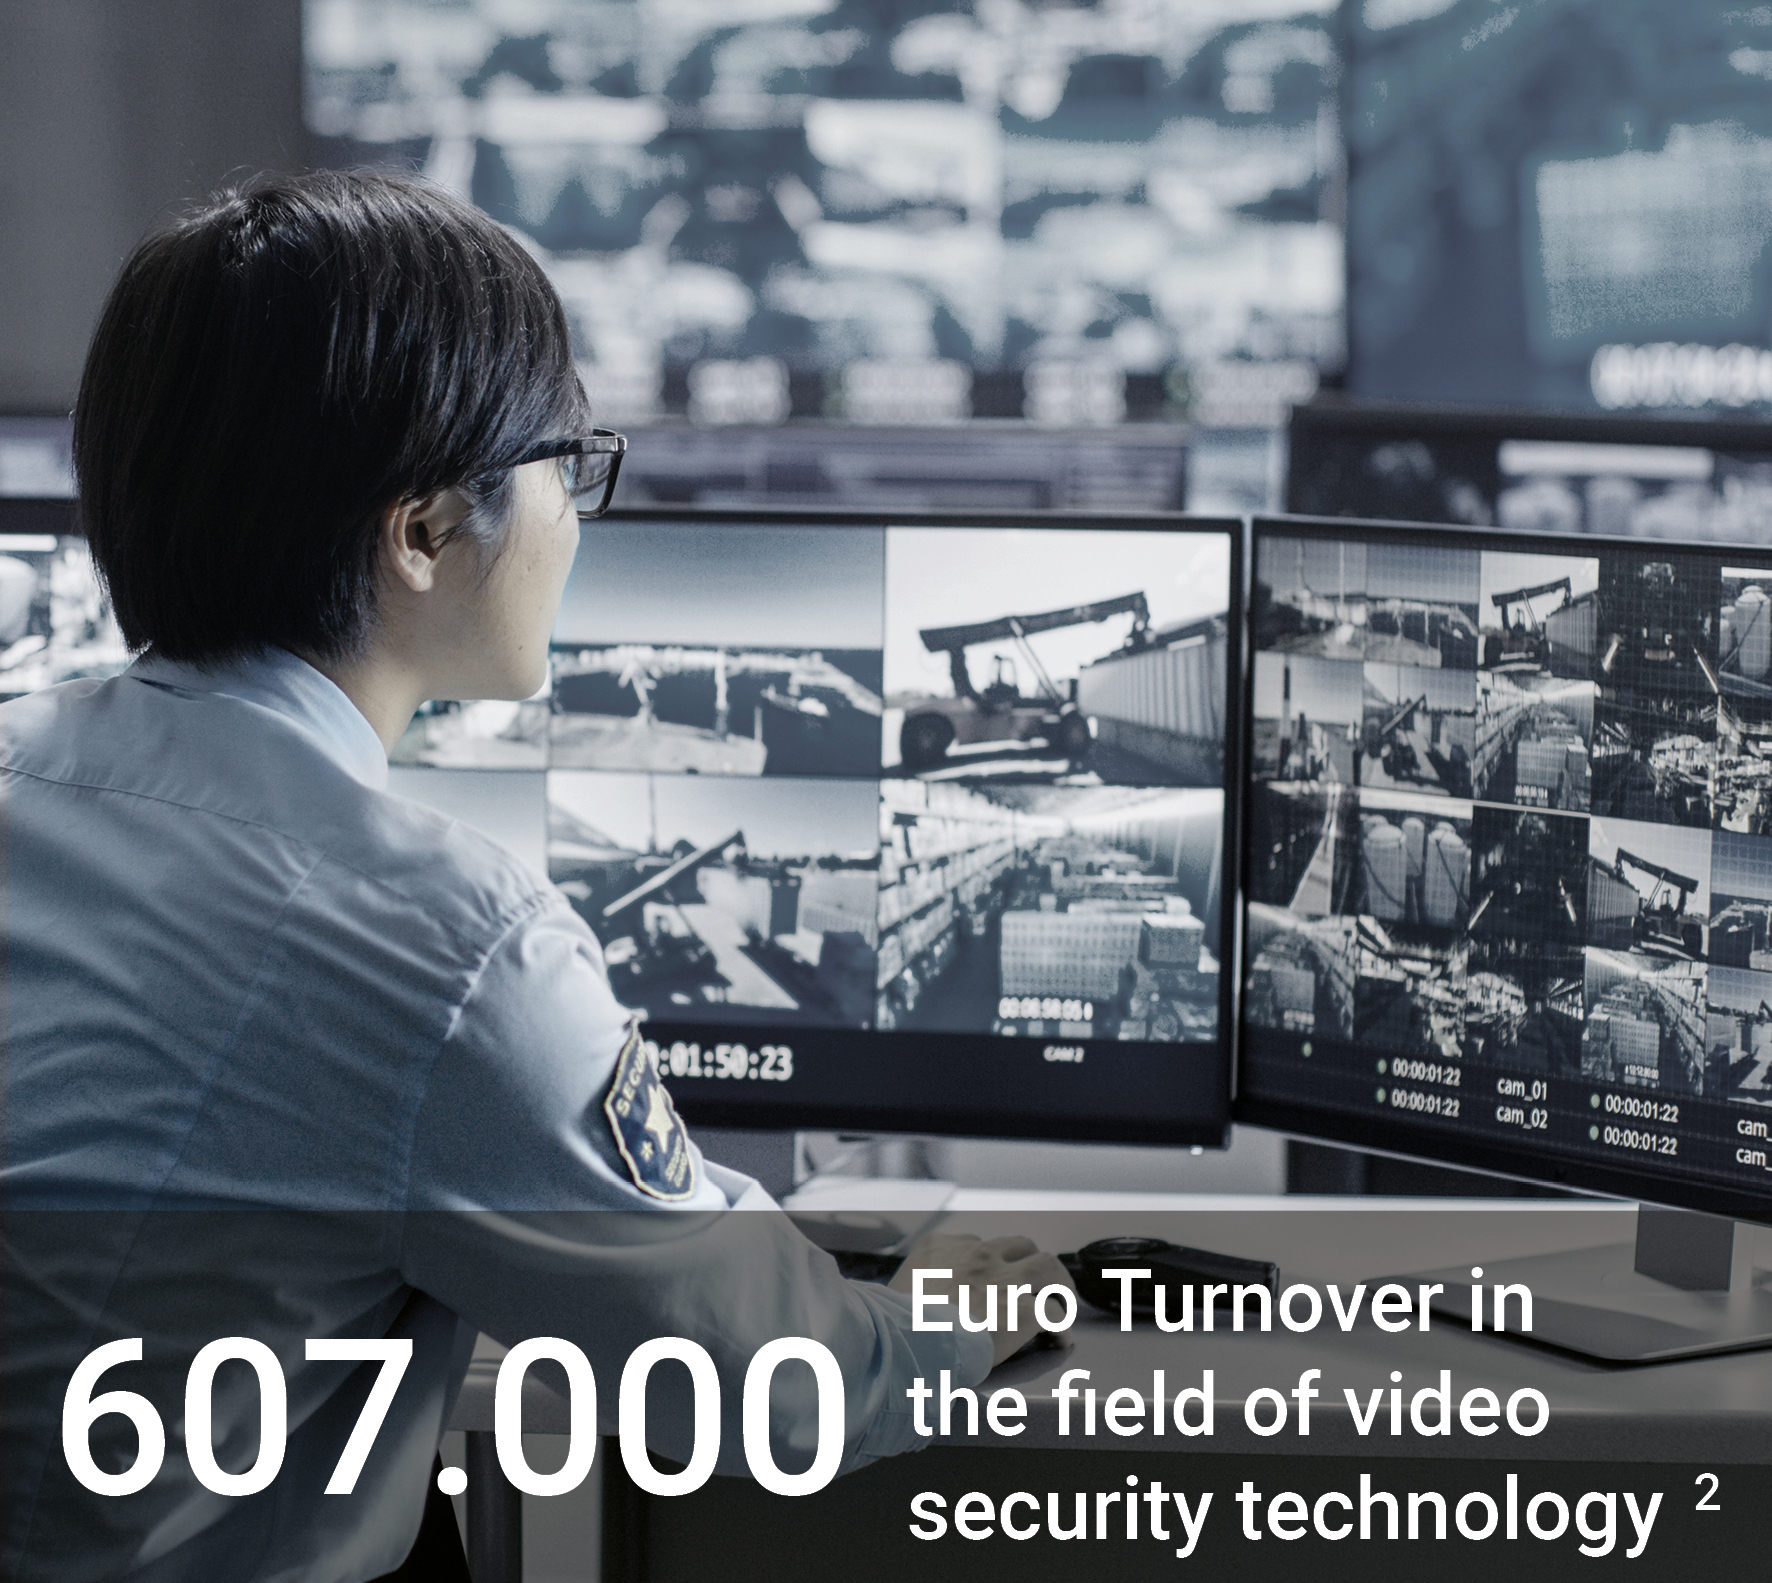 Video security technology